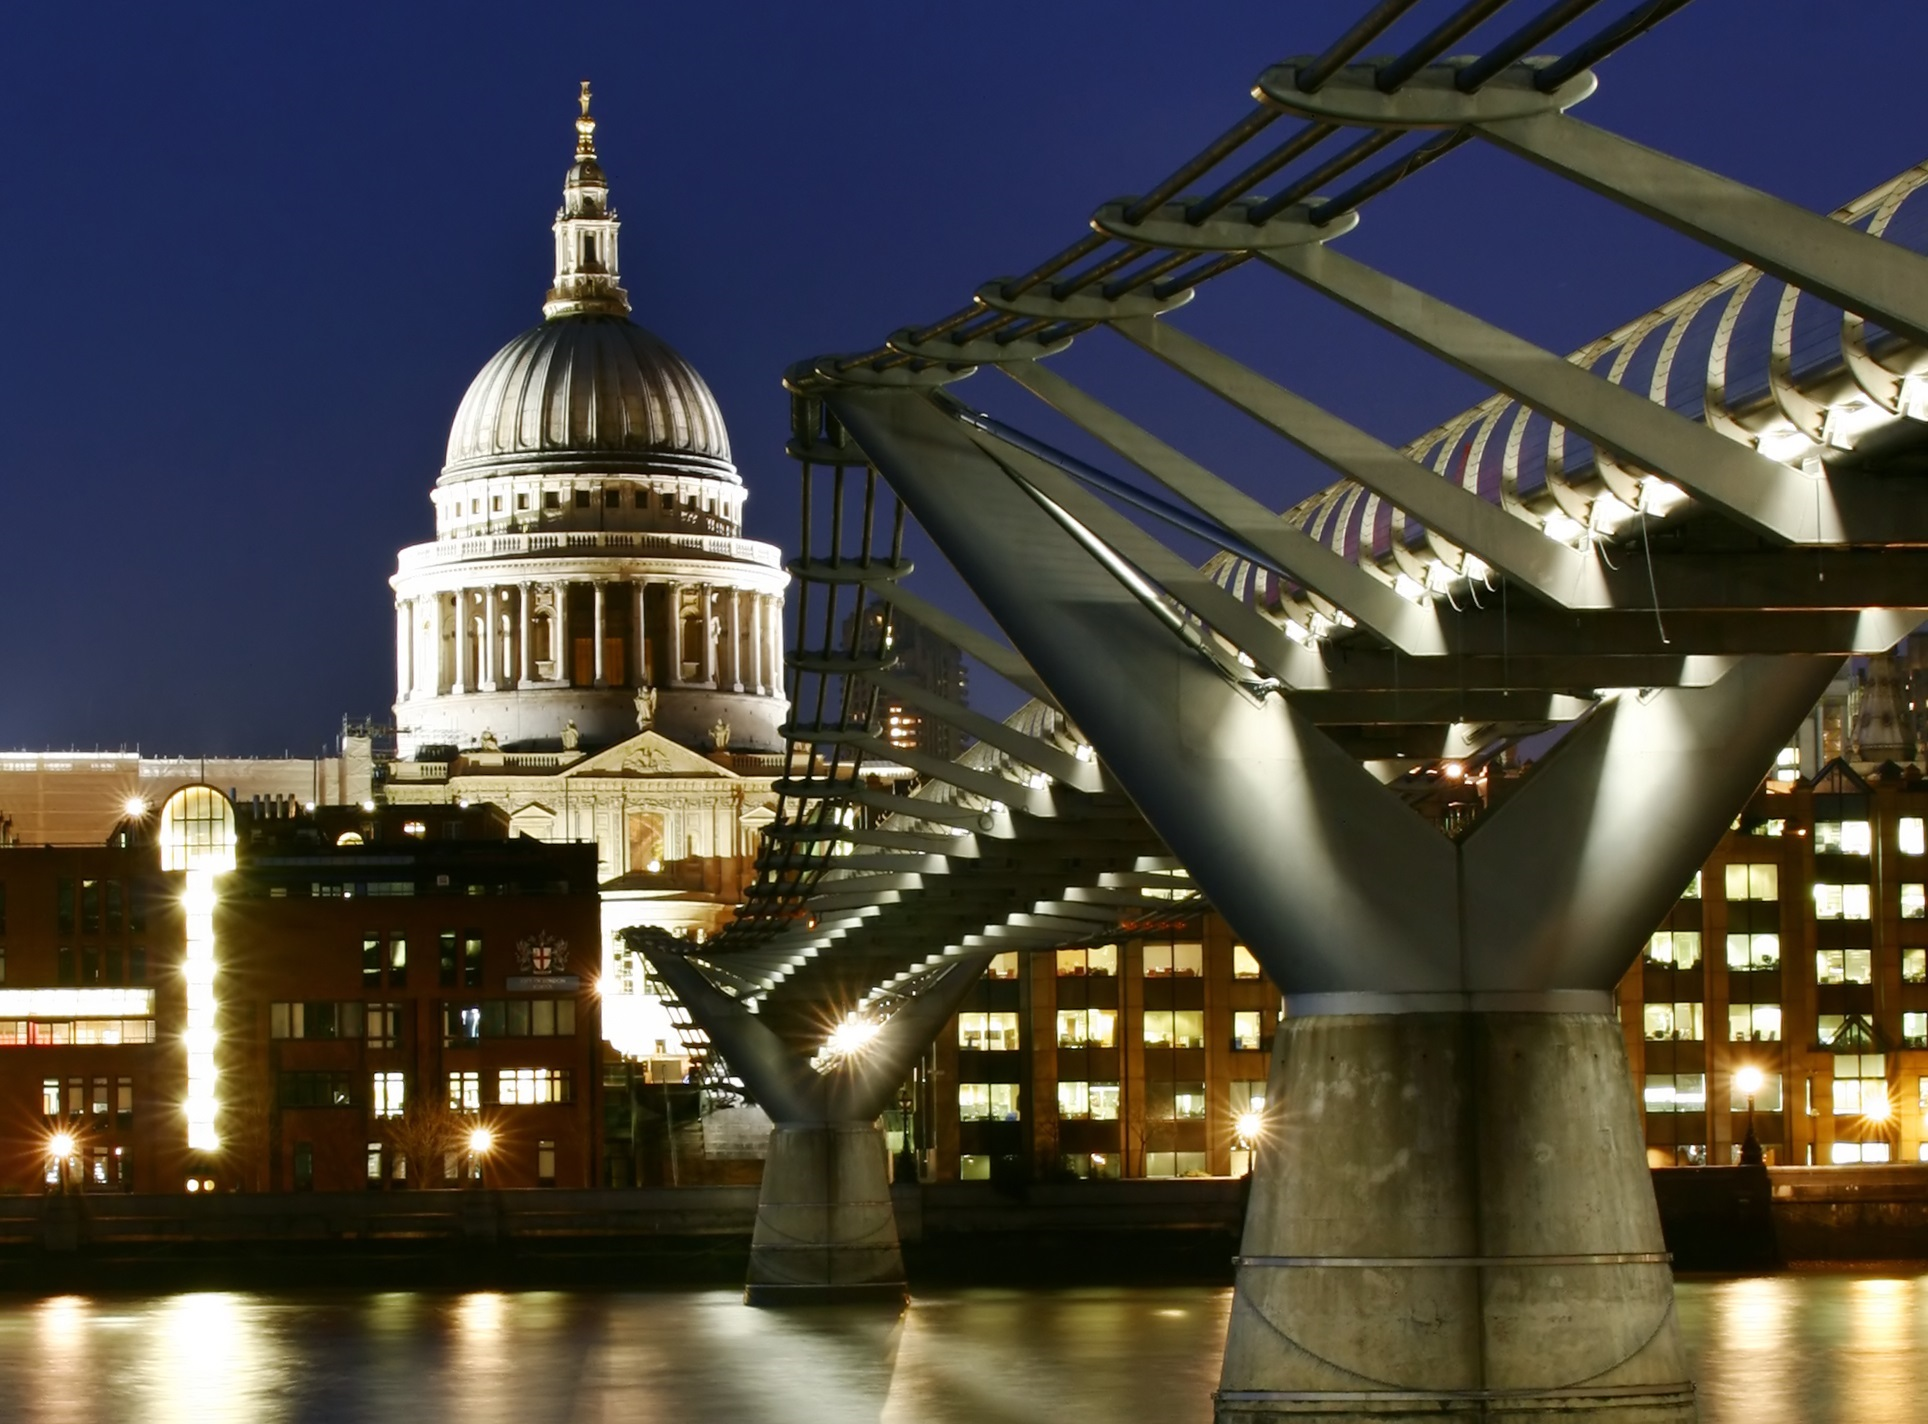 Image of the Millennium Bridge in London.